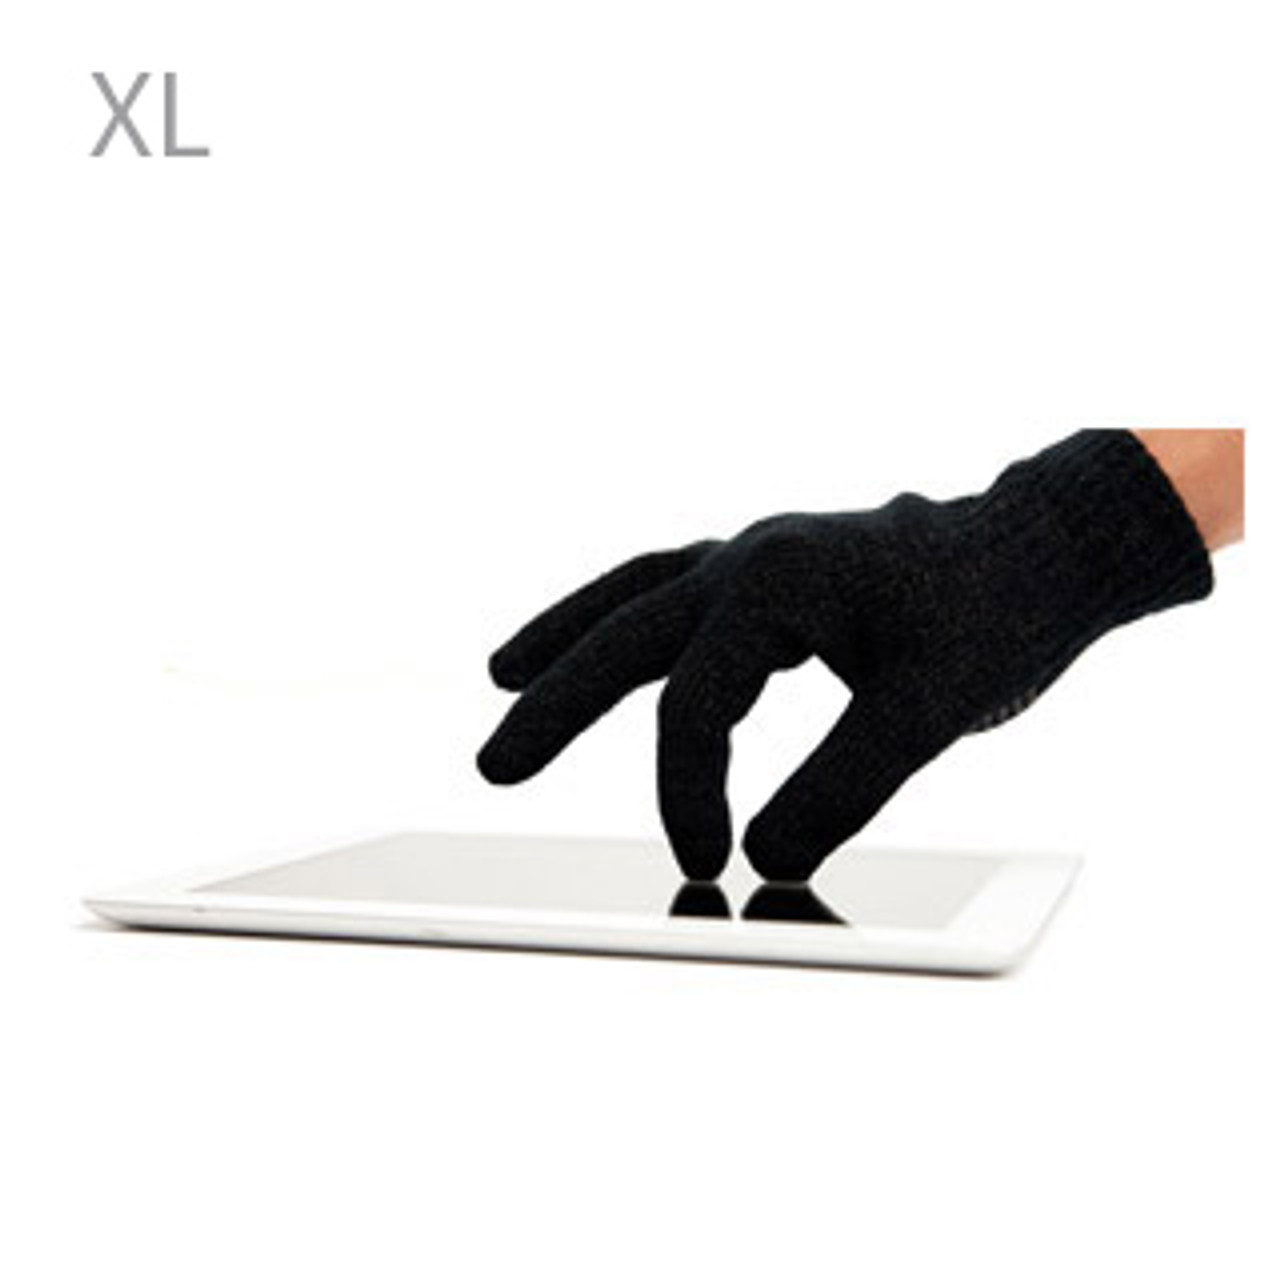 Agloves Sport Black Touchscreen compatible gloves - XLarge - 4755AGSPORTXL